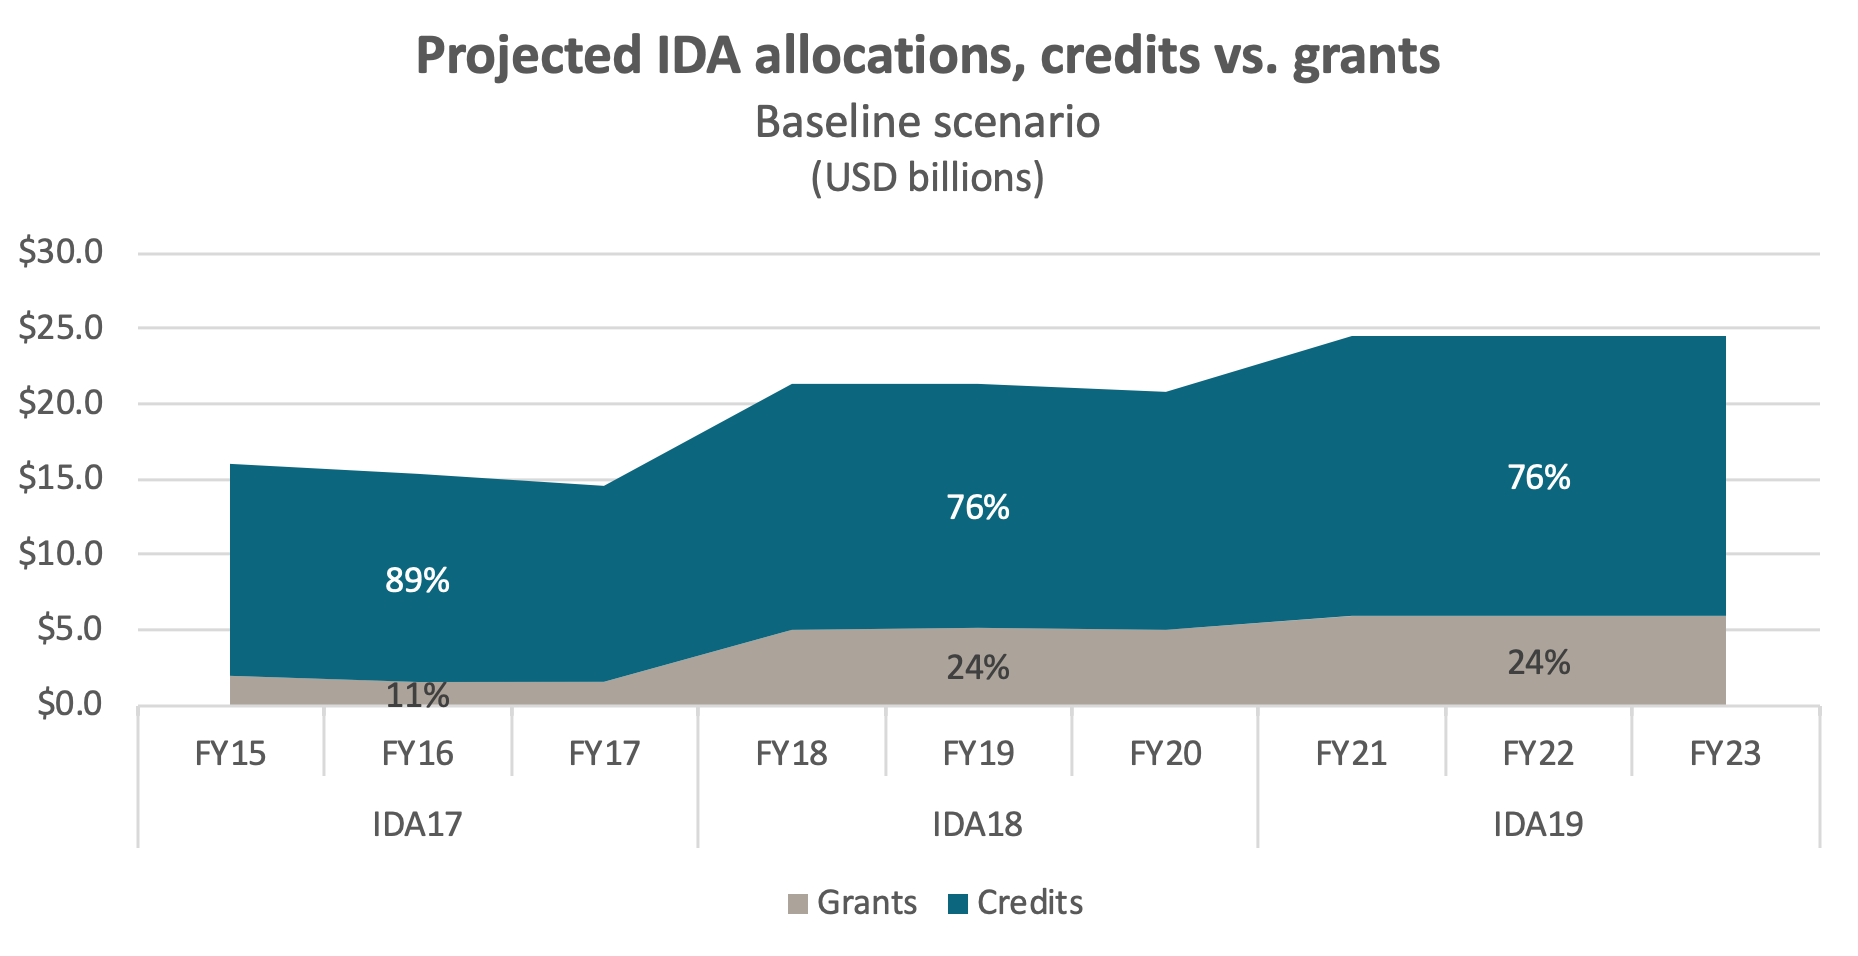 Project IDA allocations under the baseline scenario, showing a similar proportion of grants as total funding grows